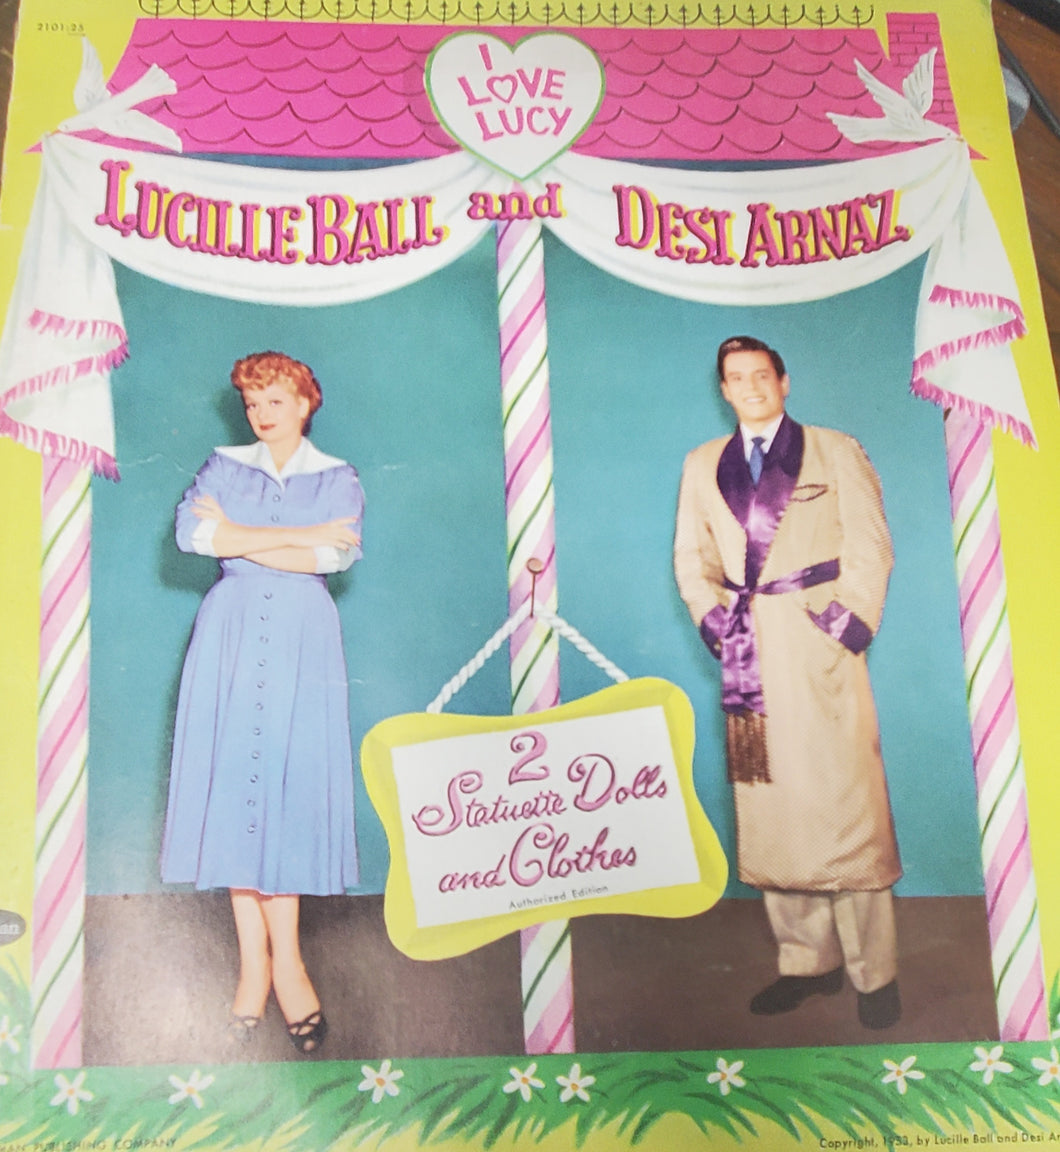 I Love Lucy Lucille Ball and Desi Arnaz Paper Dolls